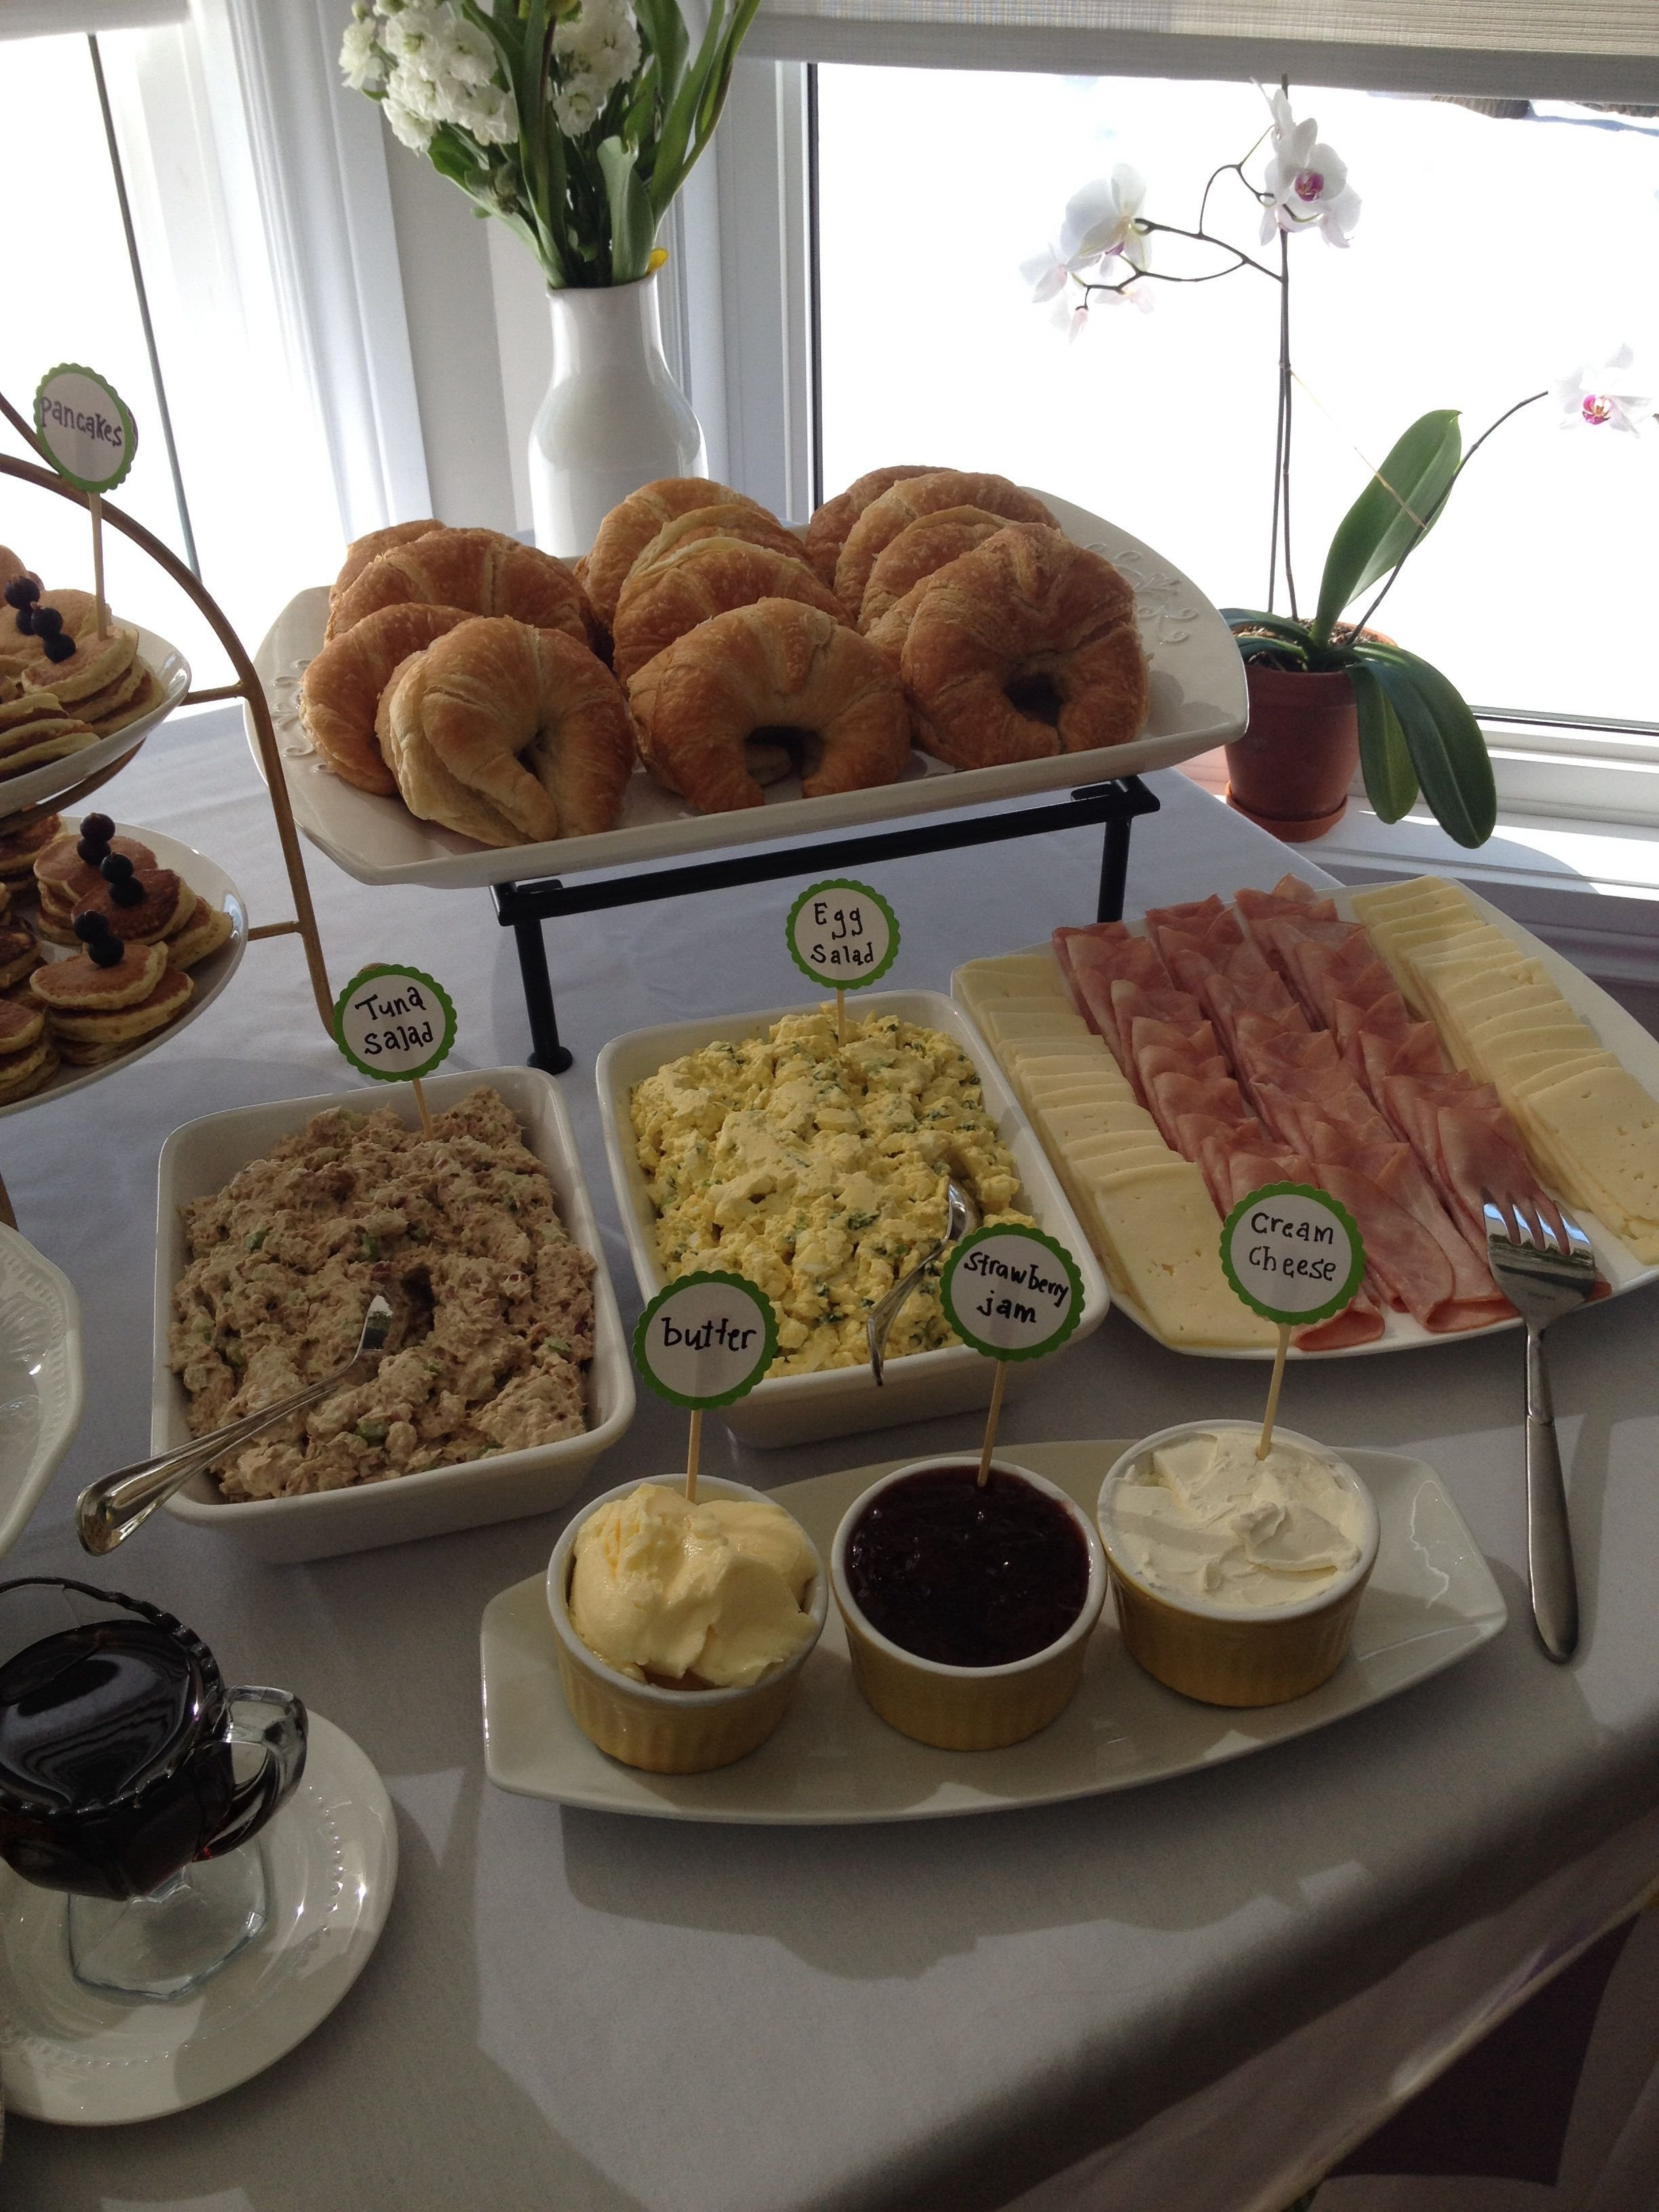 10 Attractive Baby Shower Lunch Menu Ideas croissant bar great baby shower brunch or lunch idea could do egg 1 2020